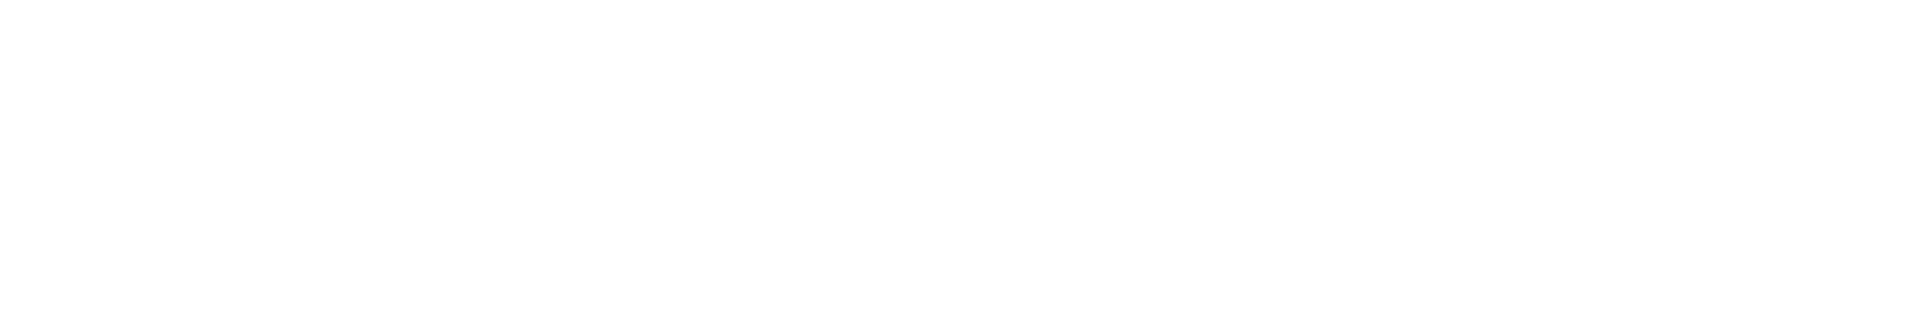 mission-wall.png